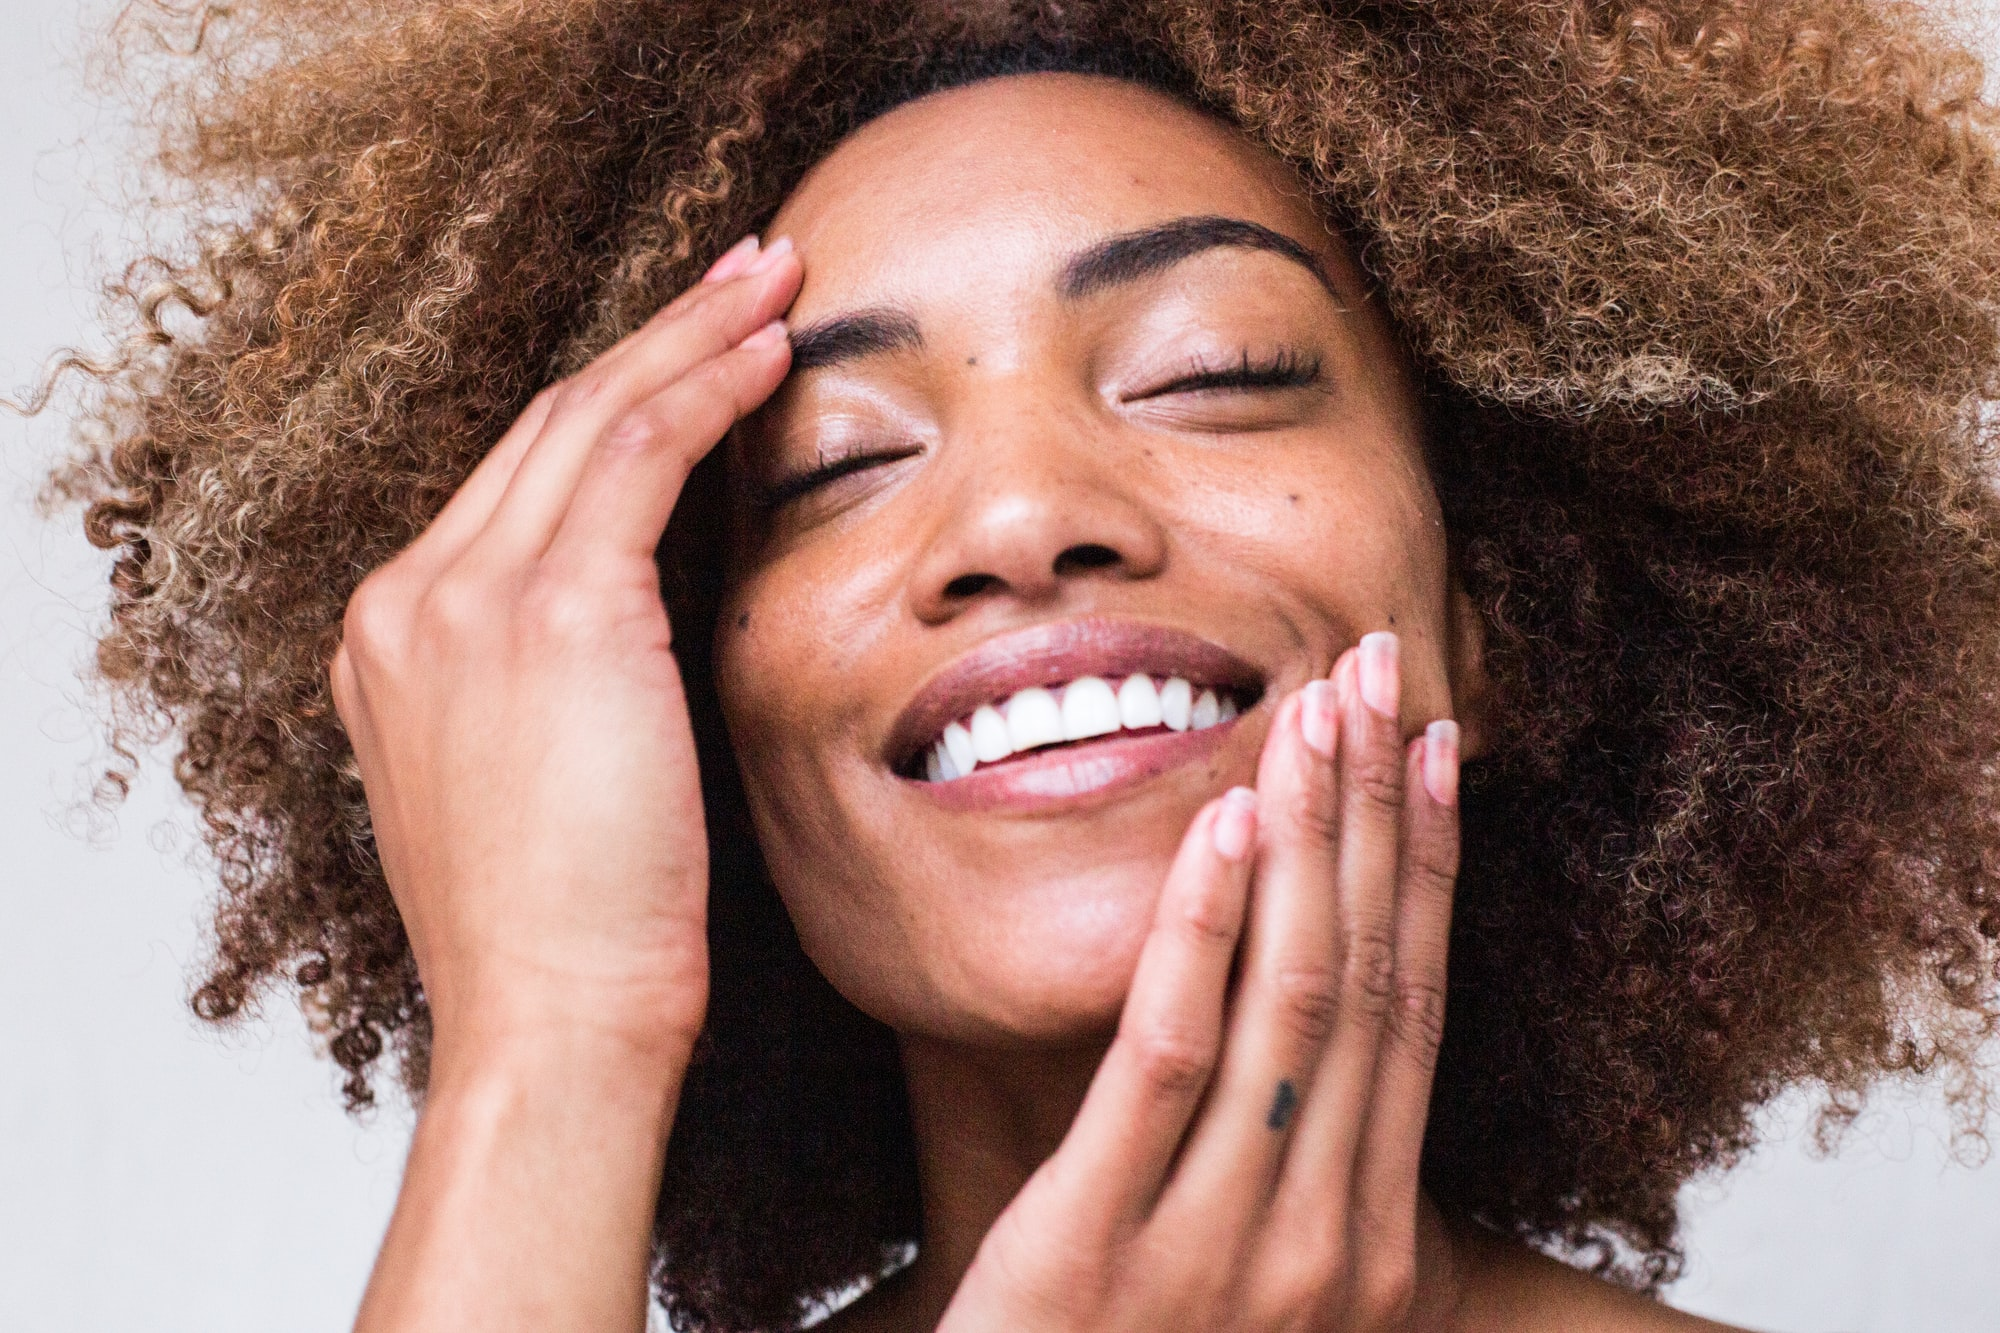 HOW TO CURE DRY SKIN ON YOUR FACE OVERNIGHT